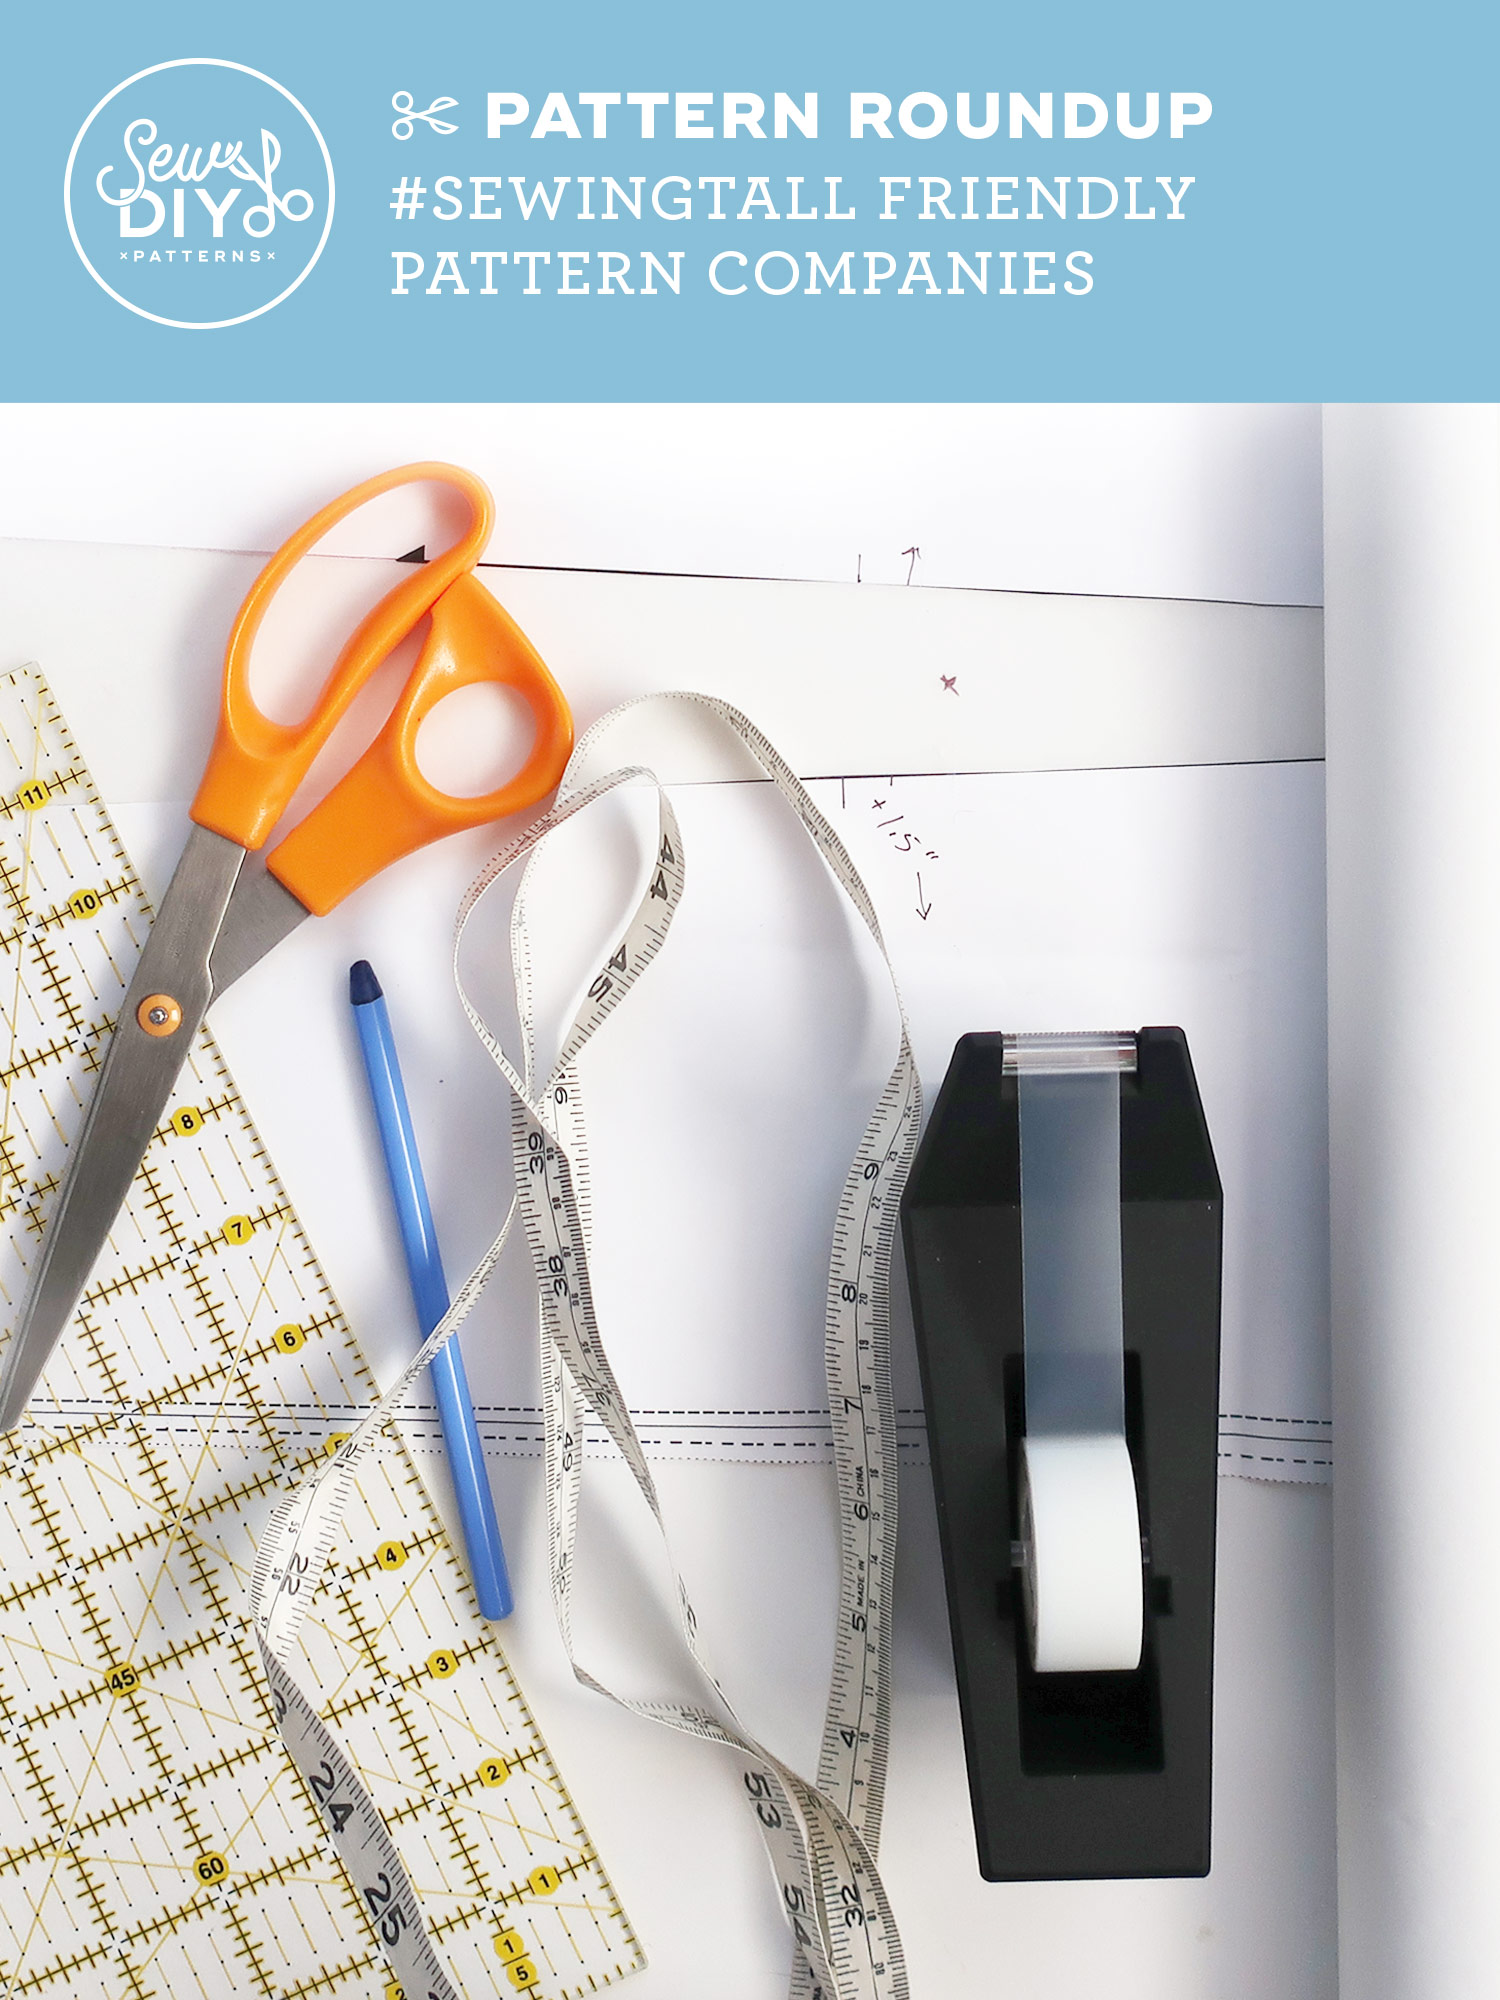 2019 List of Sewing Pattern Companies for Tall Women by Sew DIY